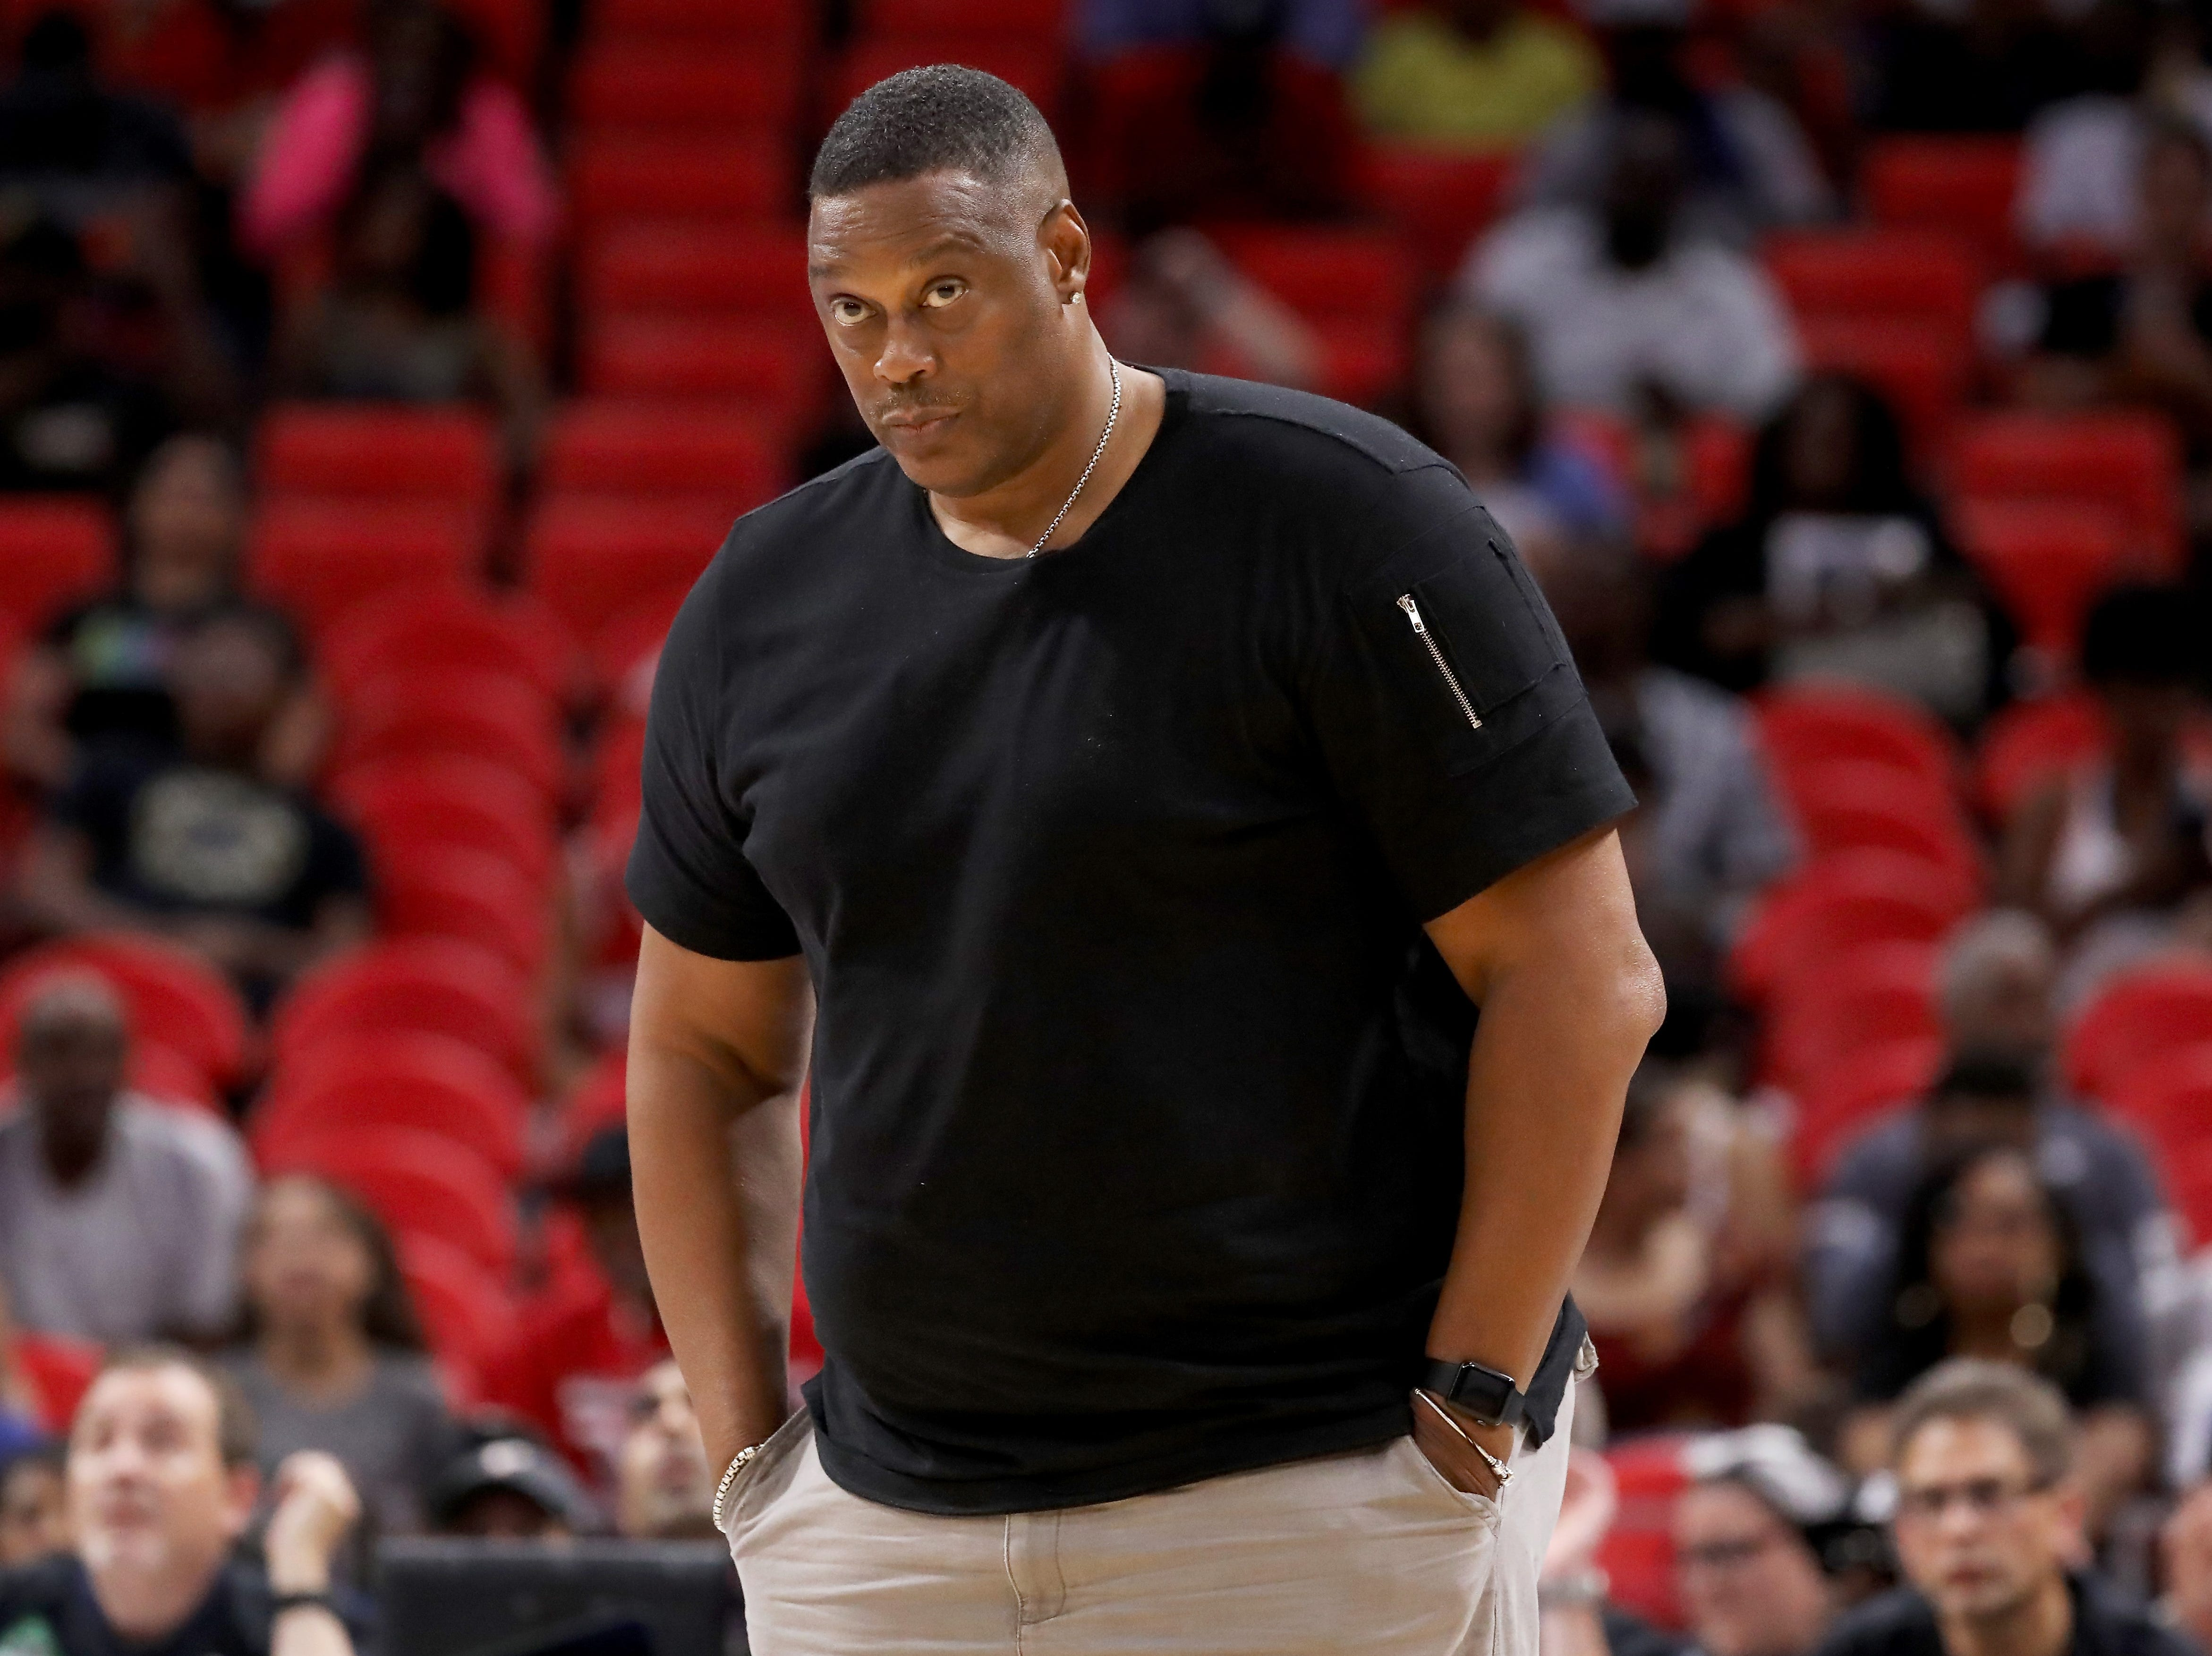 Head coach Rick Mahorn of Trilogy looks on during the game Killer 3s during BIG3 - Week Four at Little Caesars Arena on July 13, 2018 in Detroit.